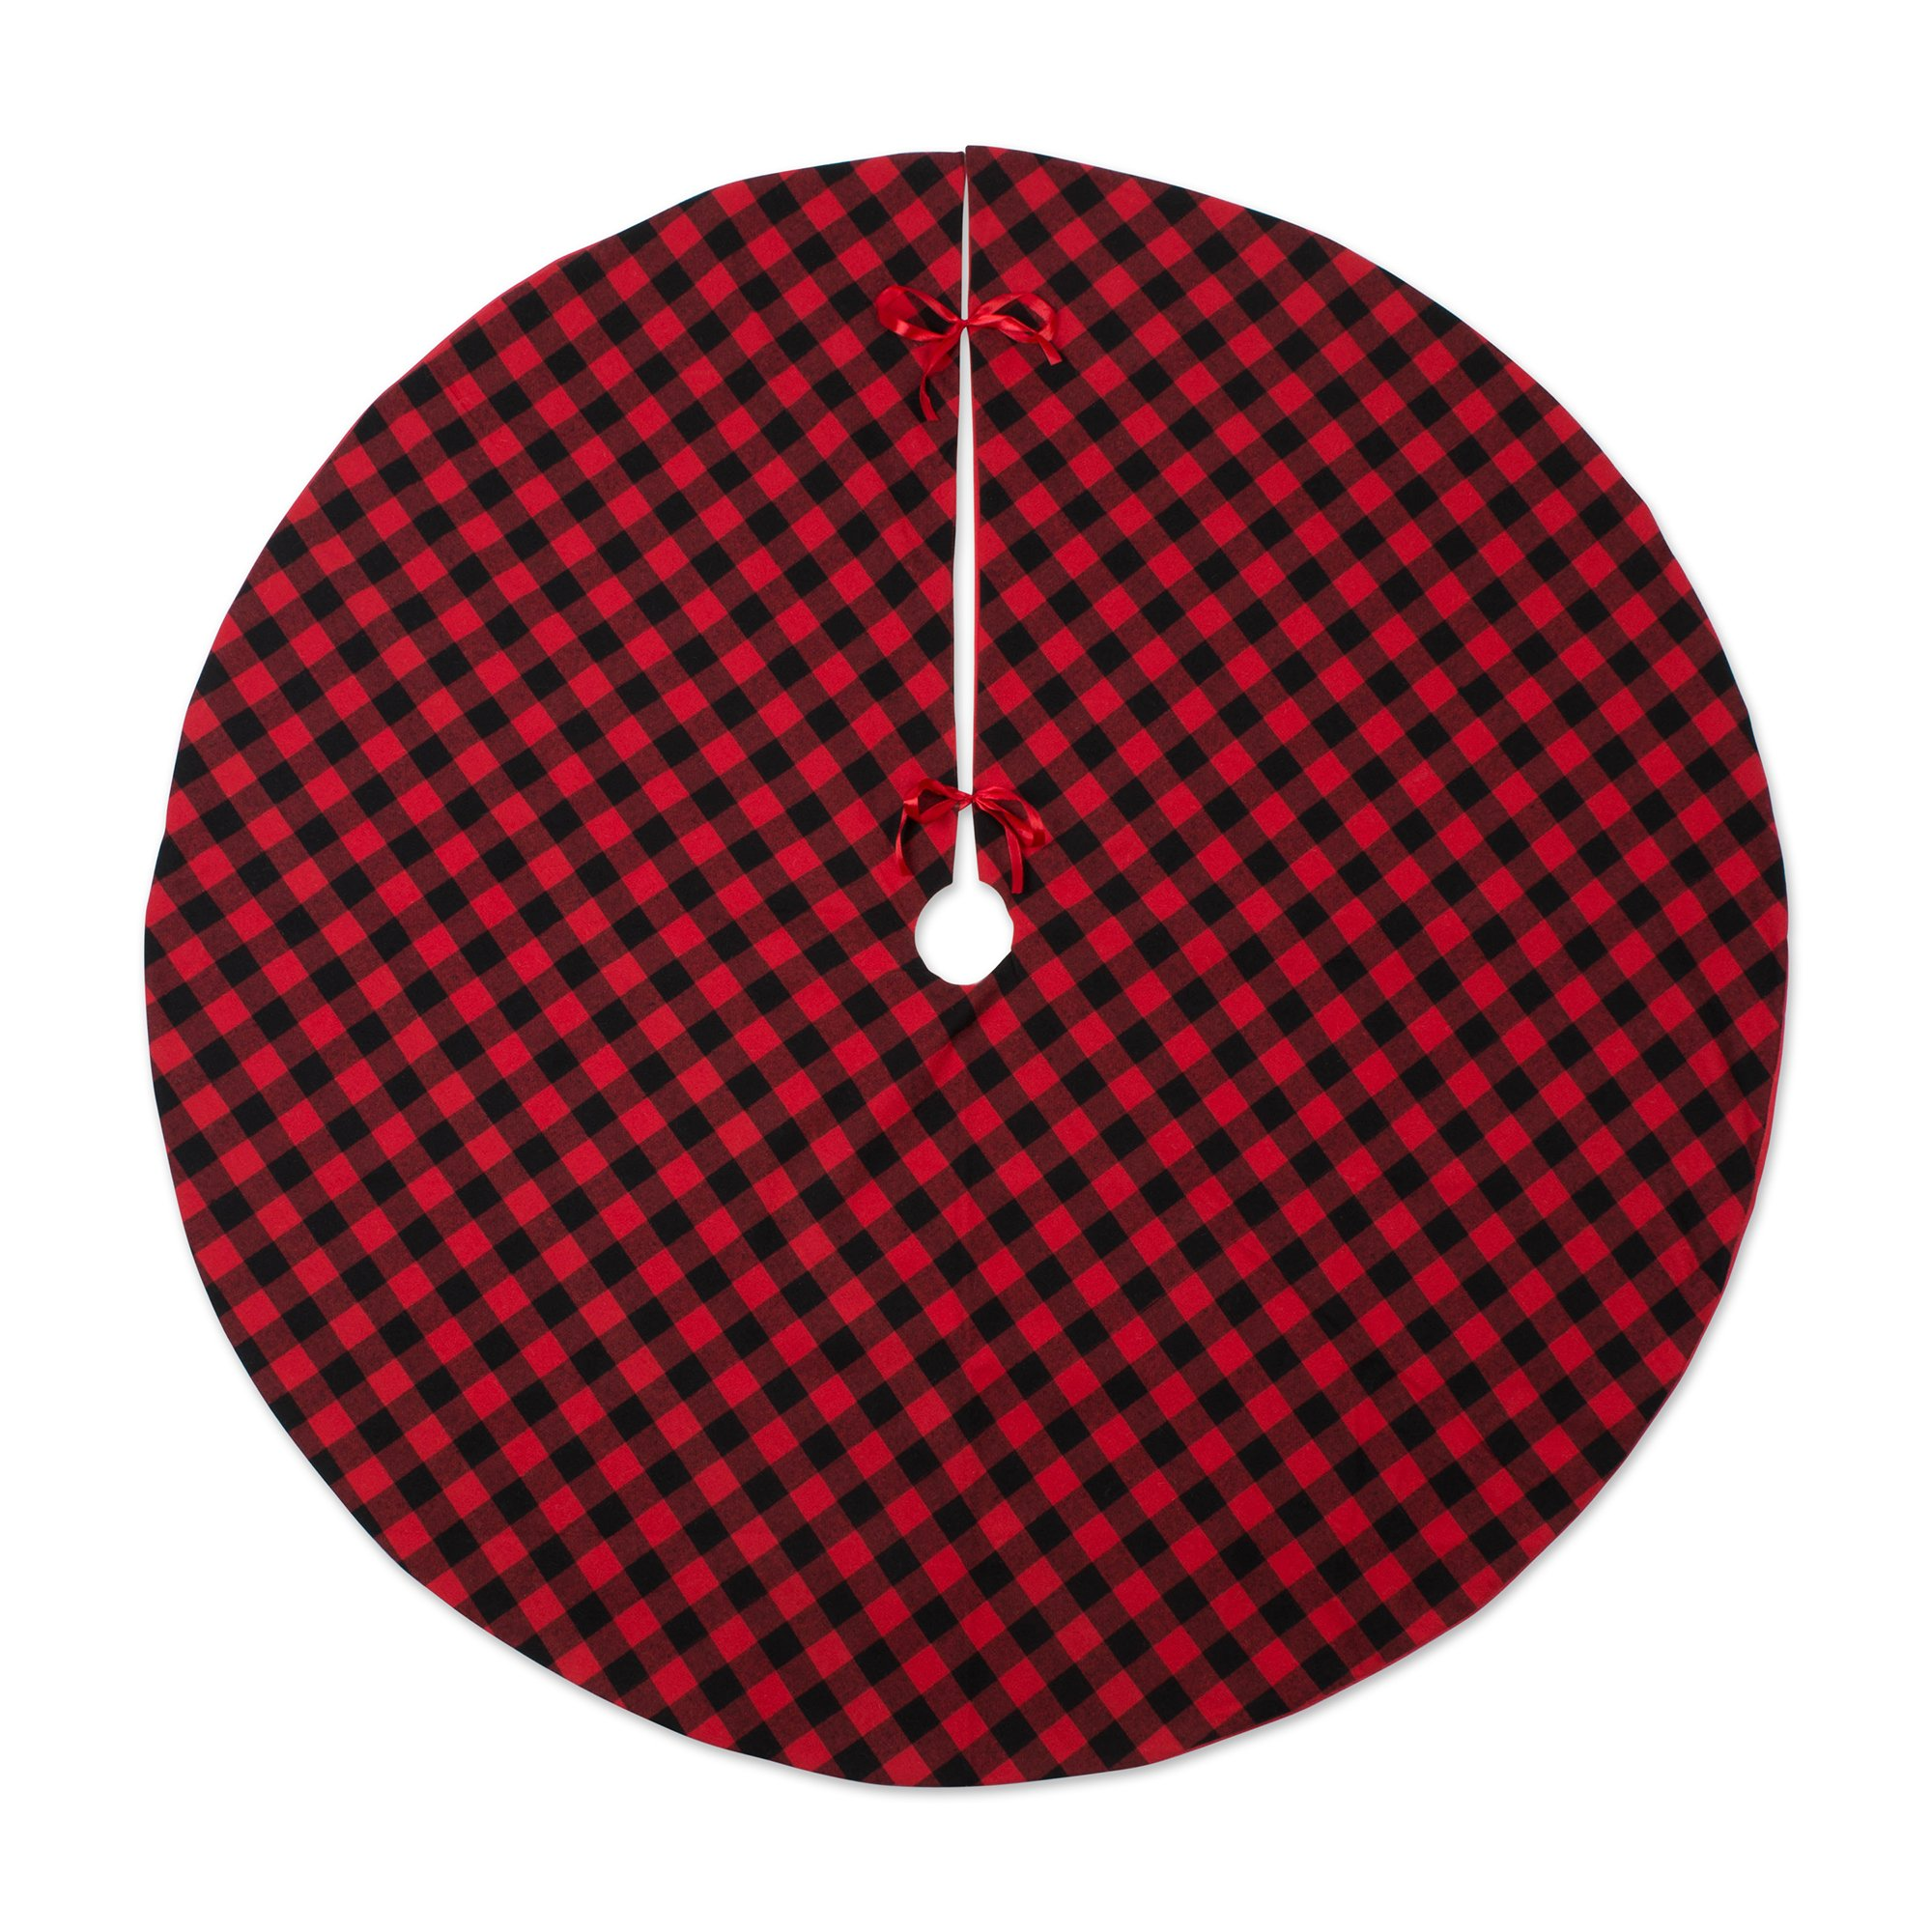 DII CAMZ10924 Plaid Tartan Tree Skirt 48'' Round for Festive Christmas Décor and Holiday Parties, Red and Black Buffalo Check